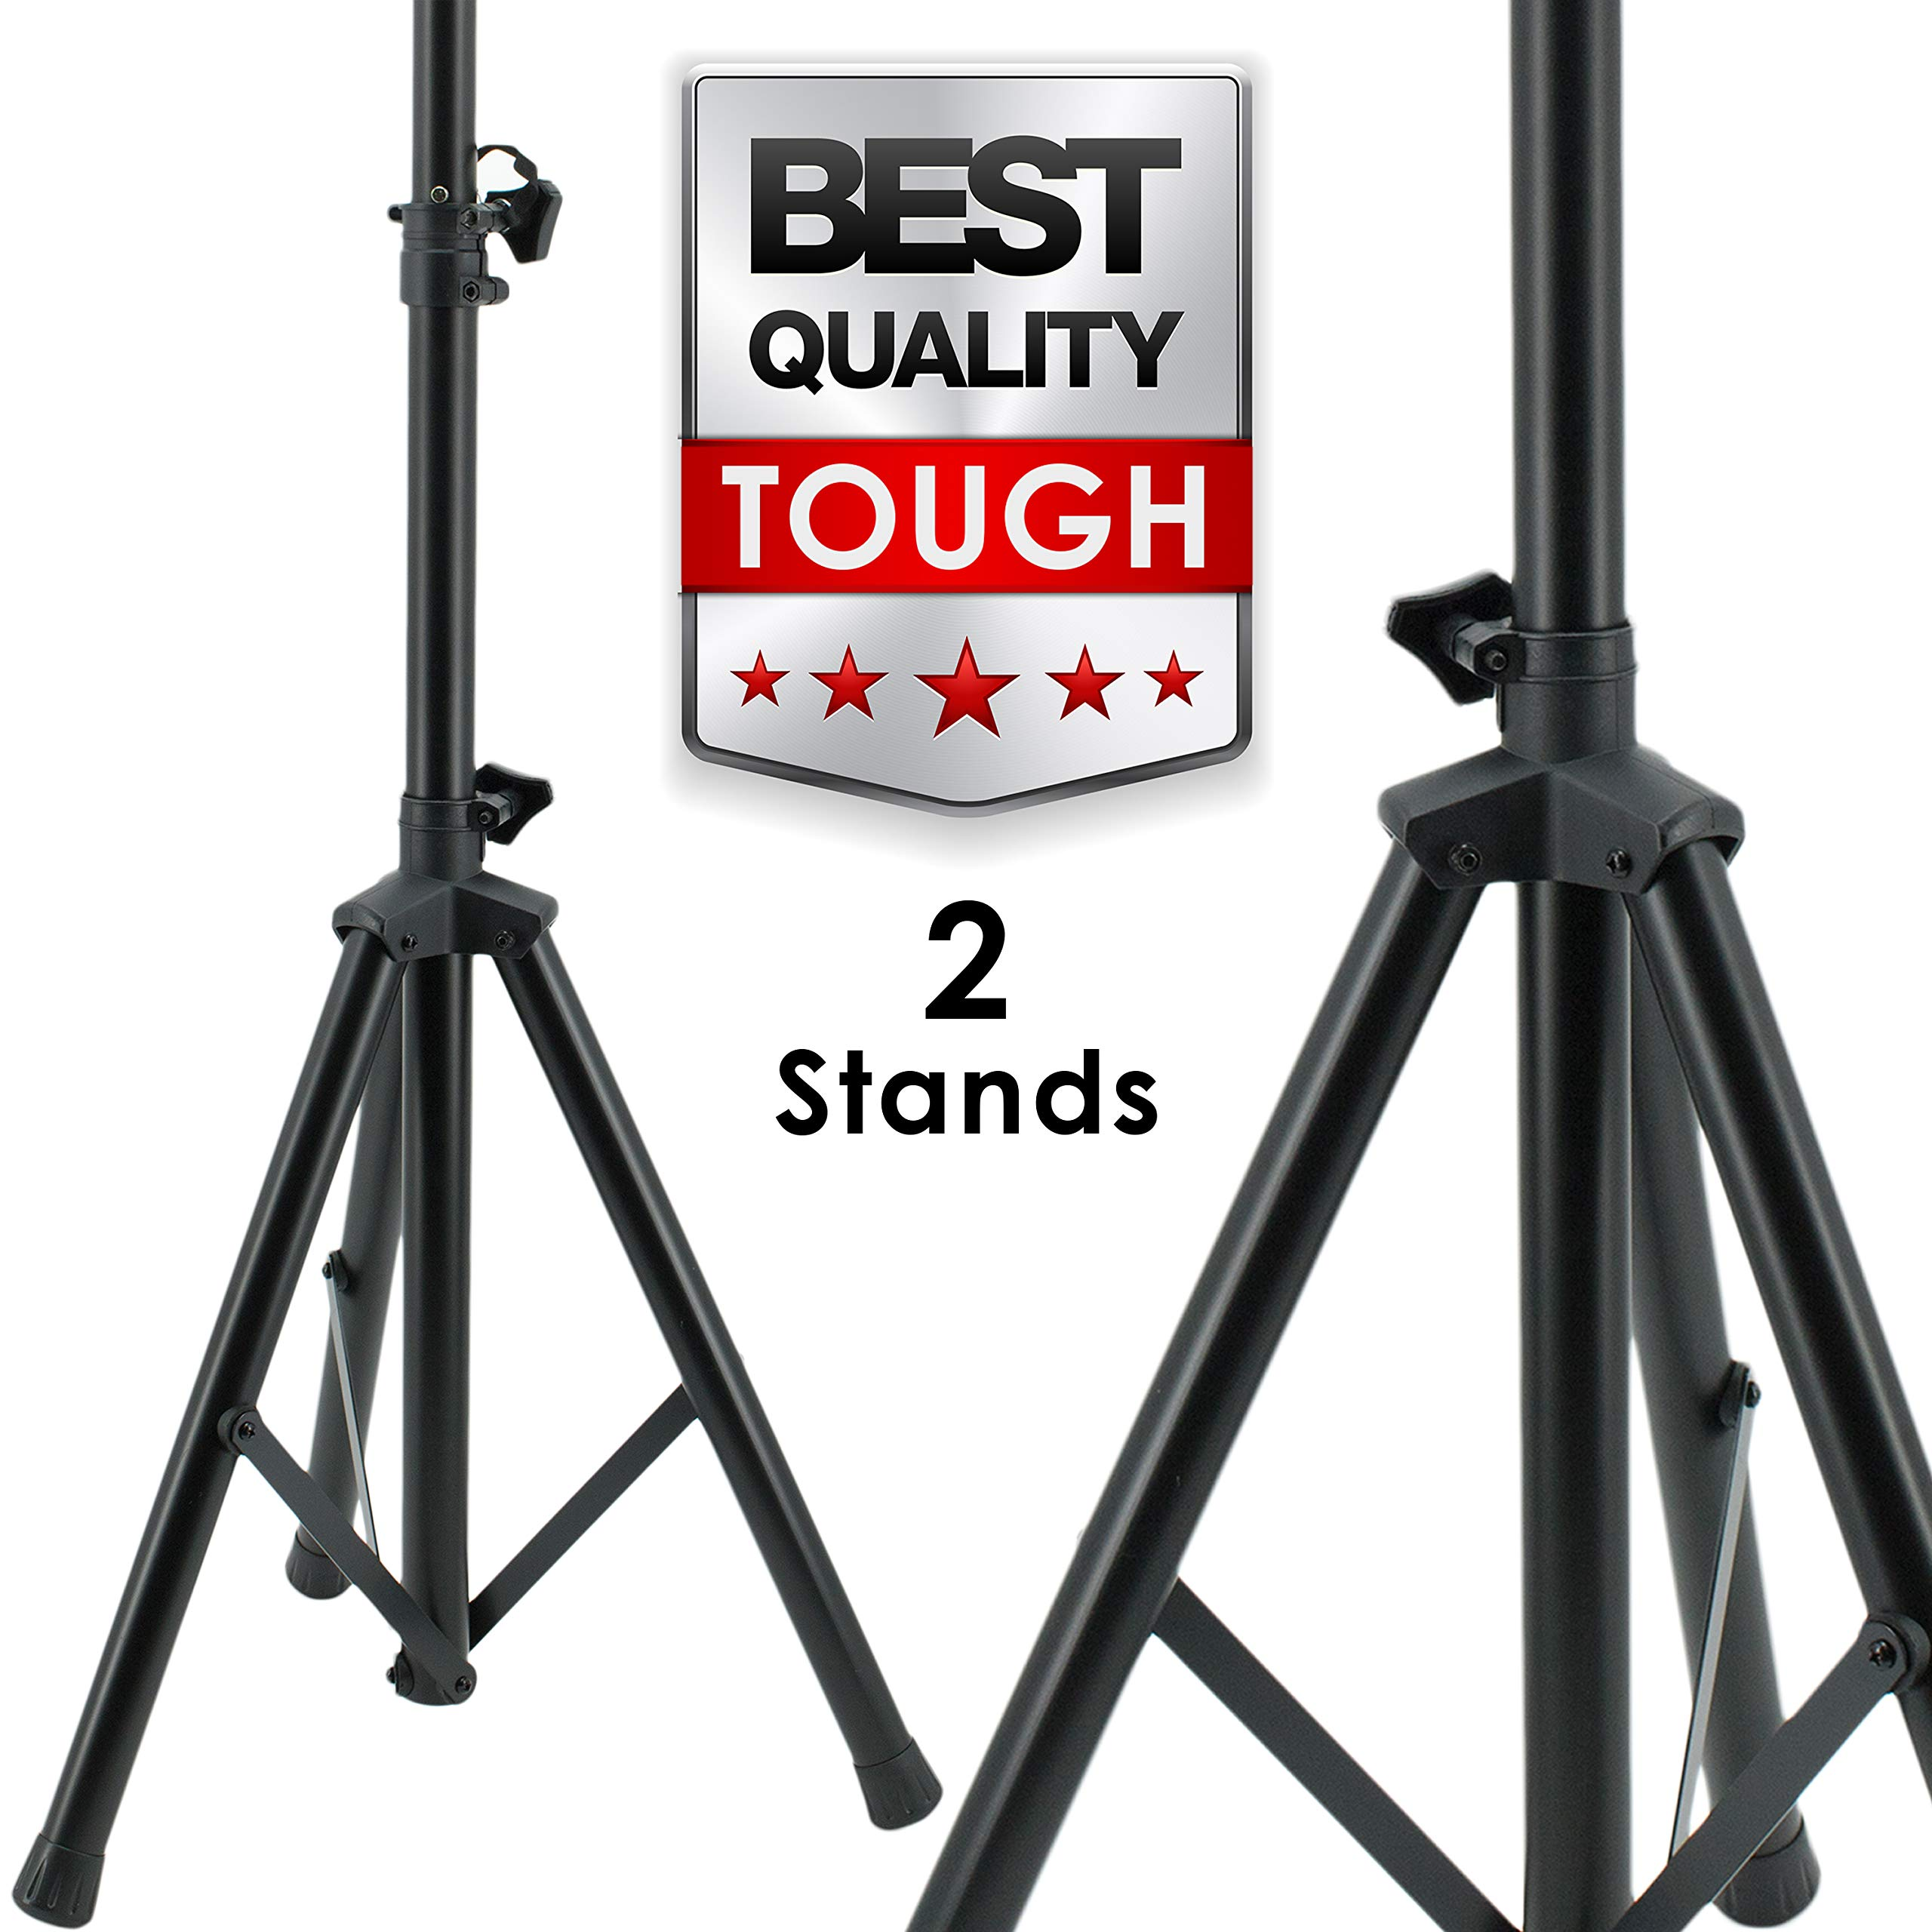 Pair EMB SS06 Heavy Duty Adjustable Height Tripod DJ PA Speaker Stand Universal - 2 Stands by EMB (Image #1)